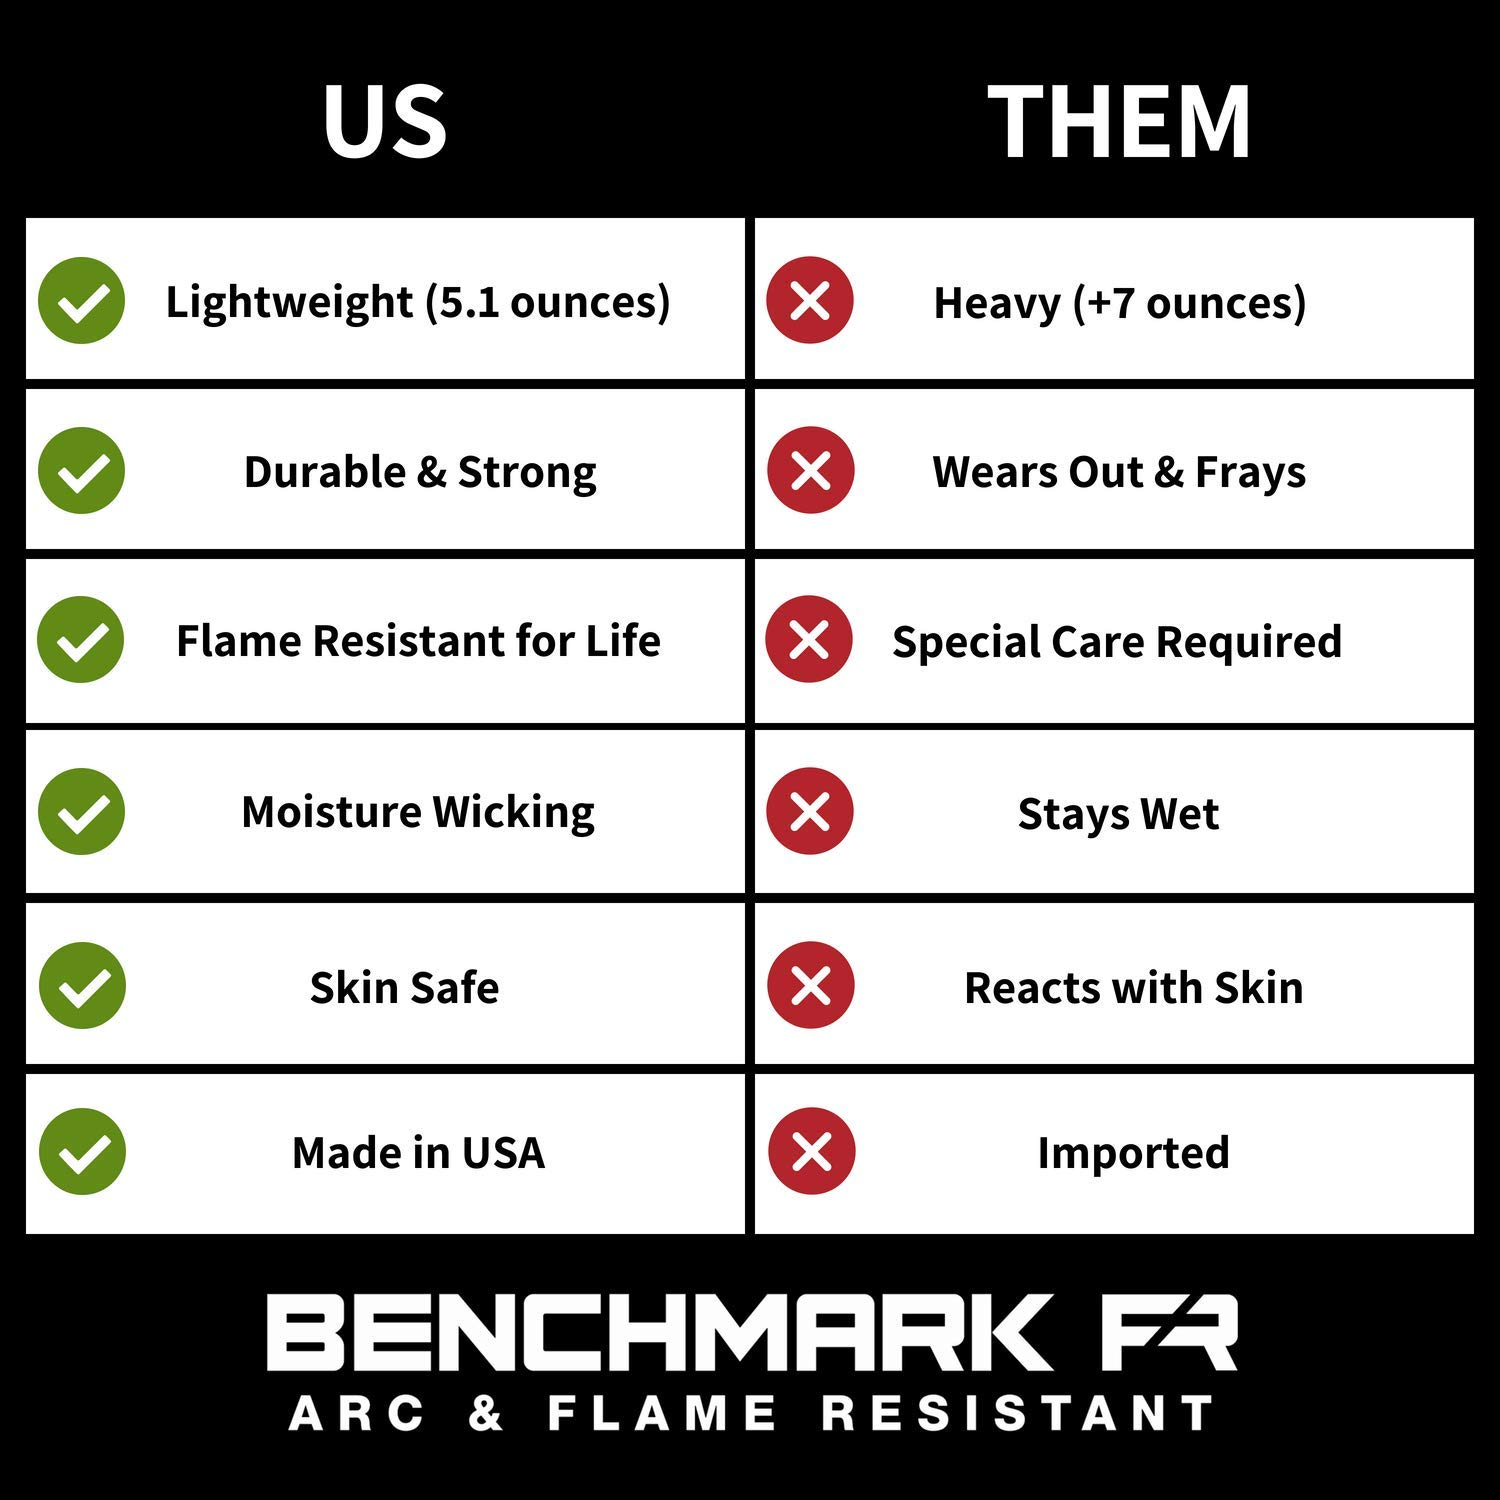 Benchmark FR Silver Bullet, 5.1 oz Ultra Lightweight FR Shirt, NPFA 2112 & CAT 2, Moisture Wicking, Men's FRC with 9 Cal rating, Made in USA, Advanced FR Materials, Beige, Large by Benchmark FR (Image #9)